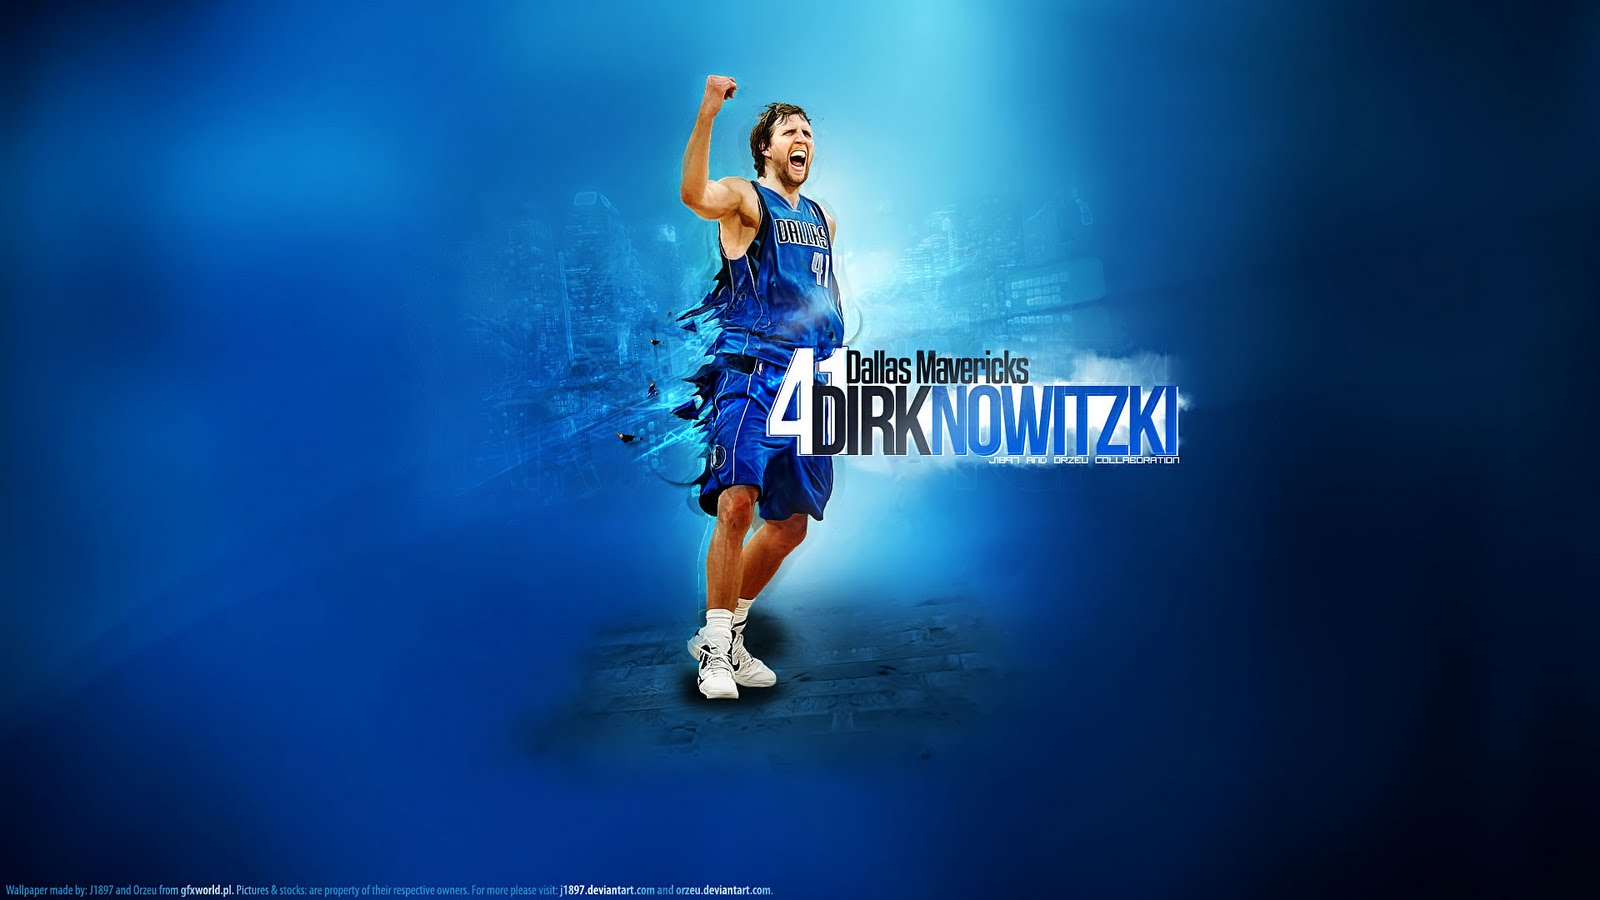 Dirk Nowitzki Mavs Playoffs Widescreen Wallpaper ~ Big Fan ...